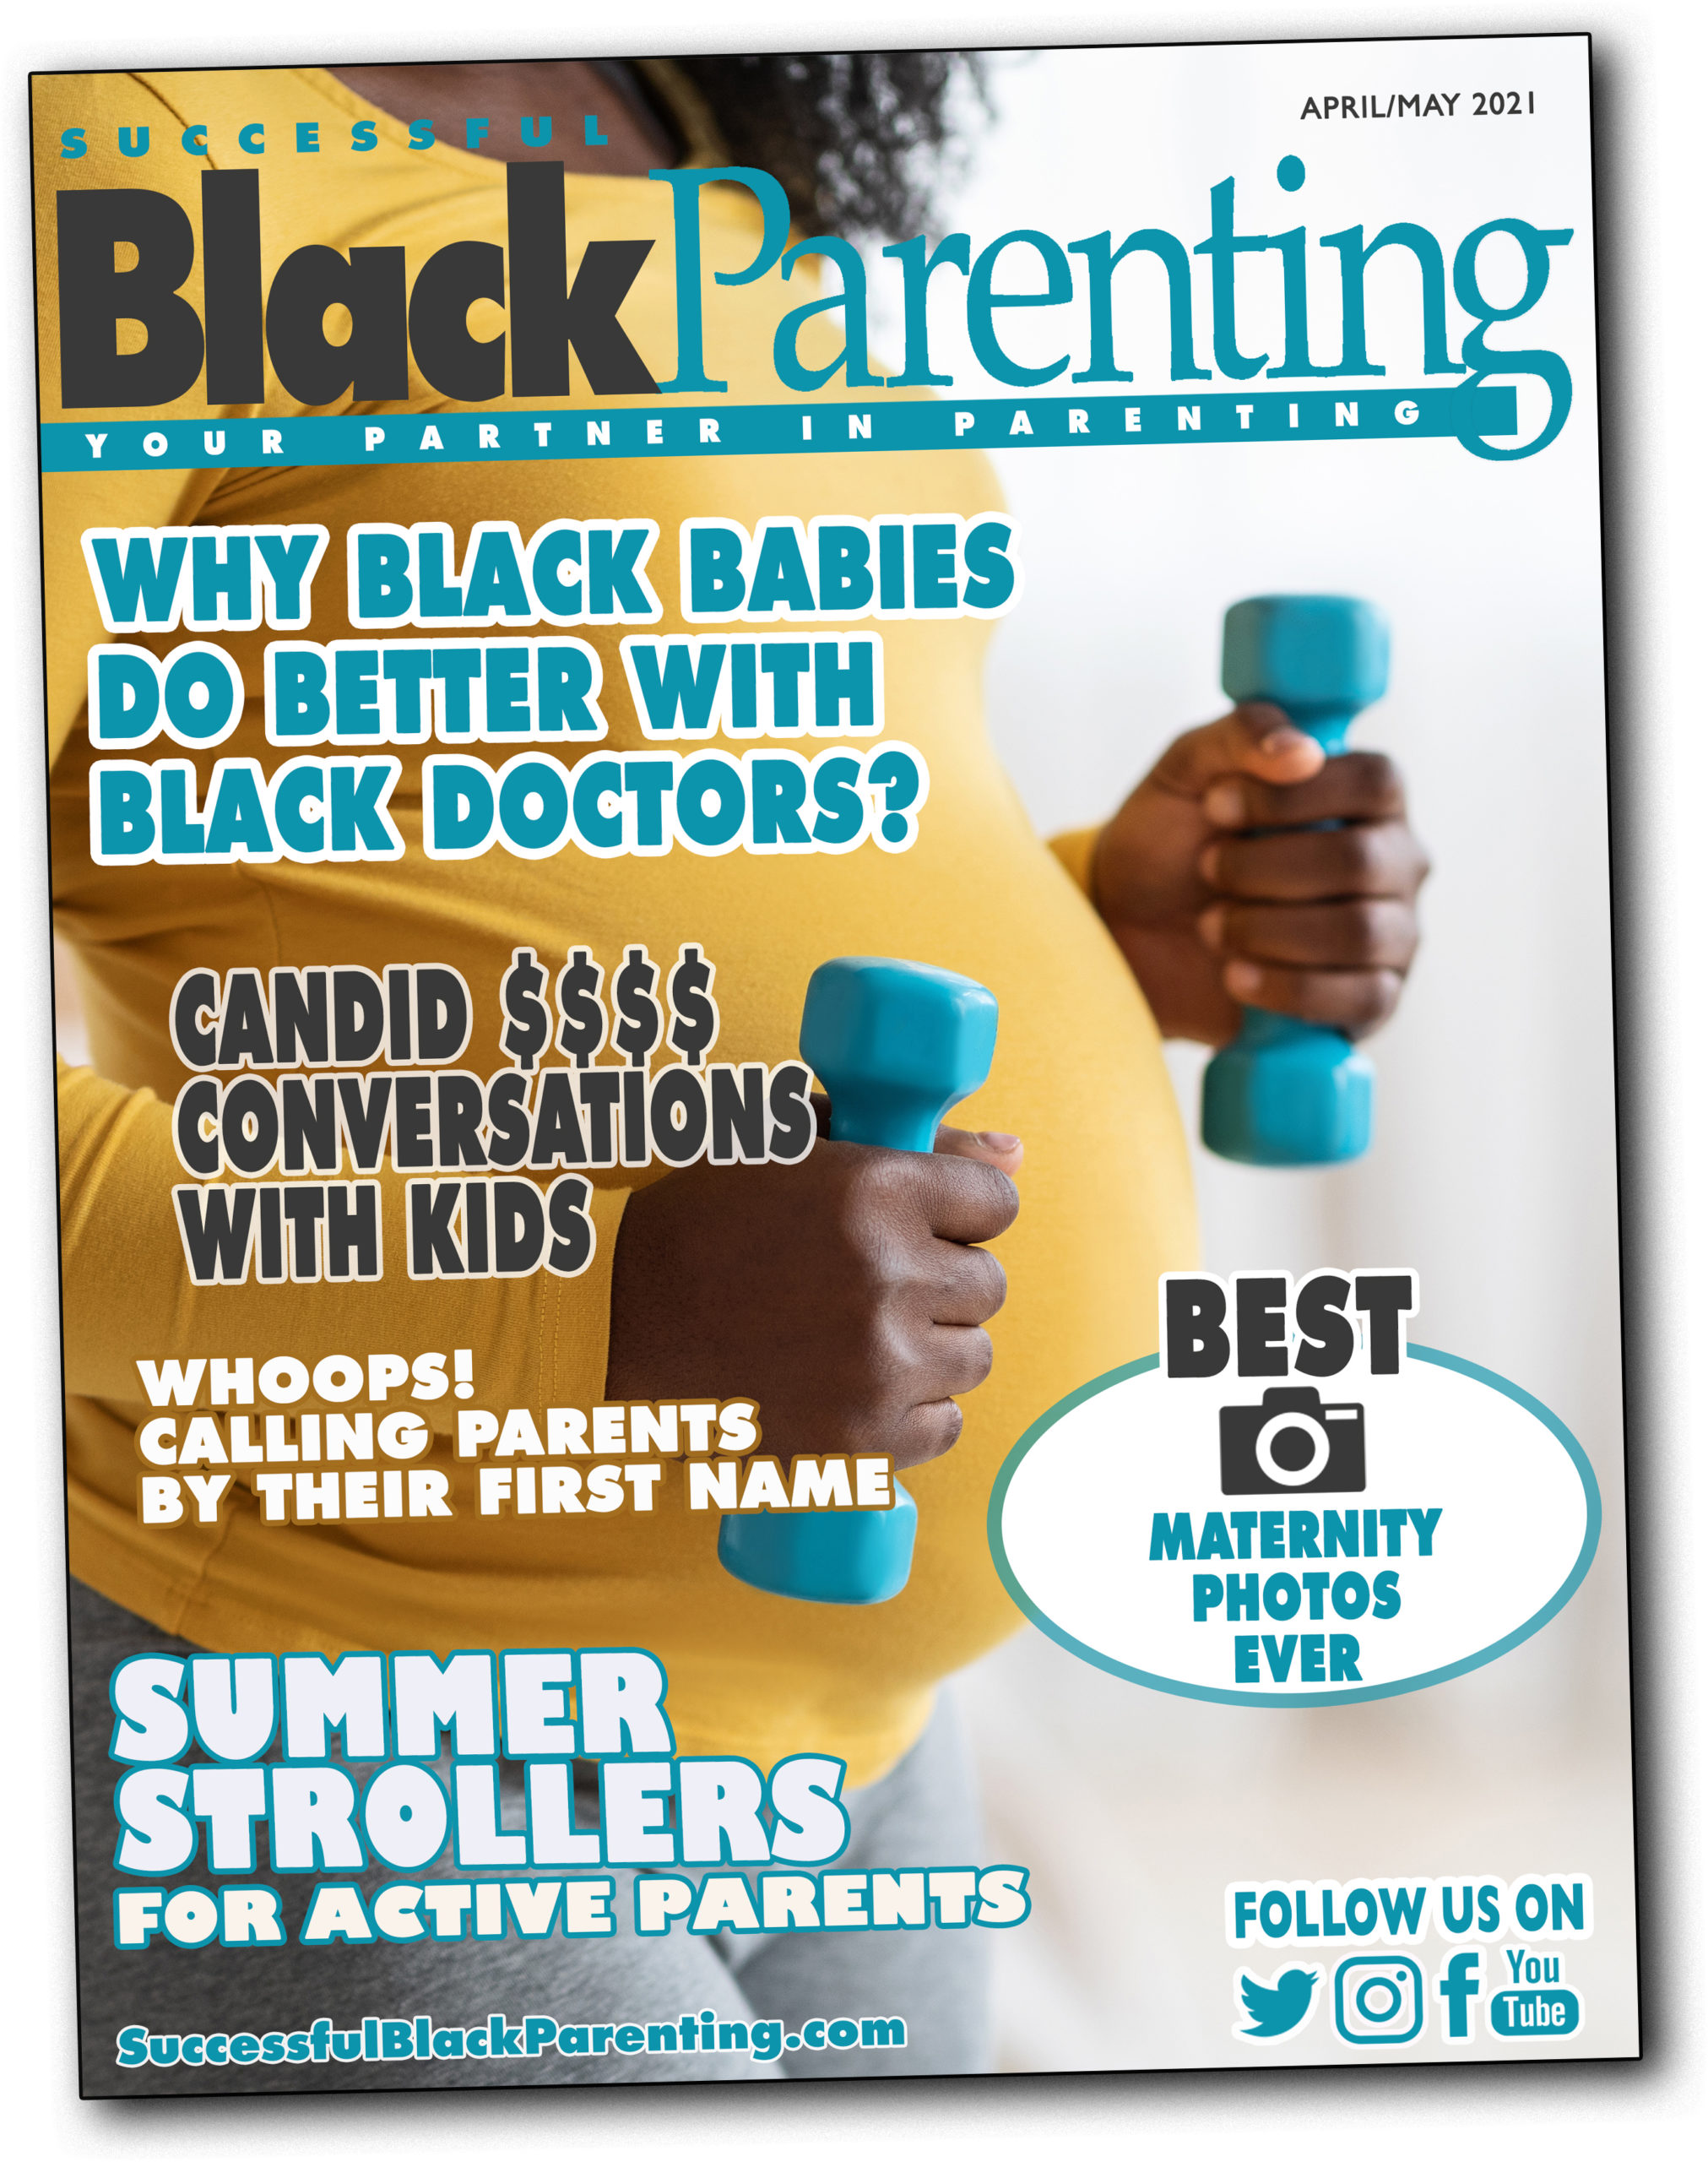 APRIL/MAY 2021 - Successful Black Parenting Magazine